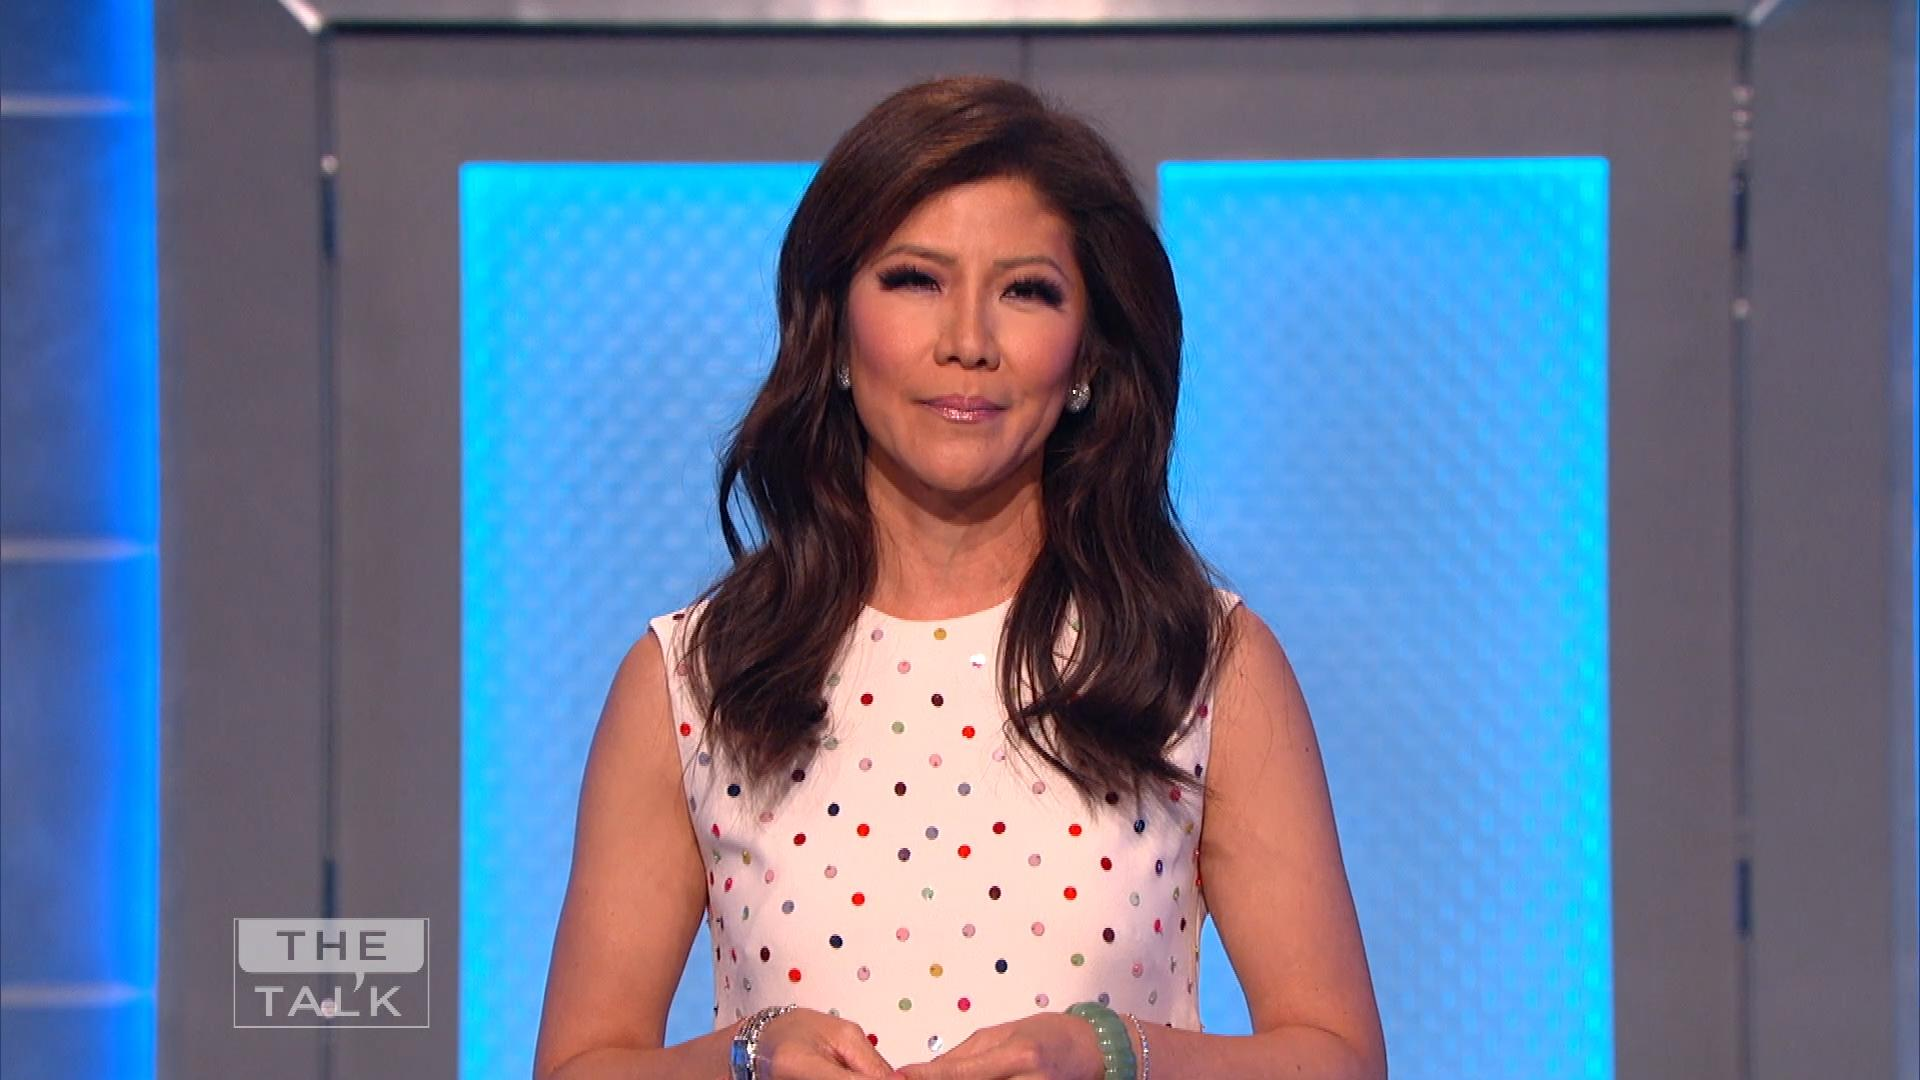 Julie Chen Chokes Up While Officially Announcing She's Leaving 'The